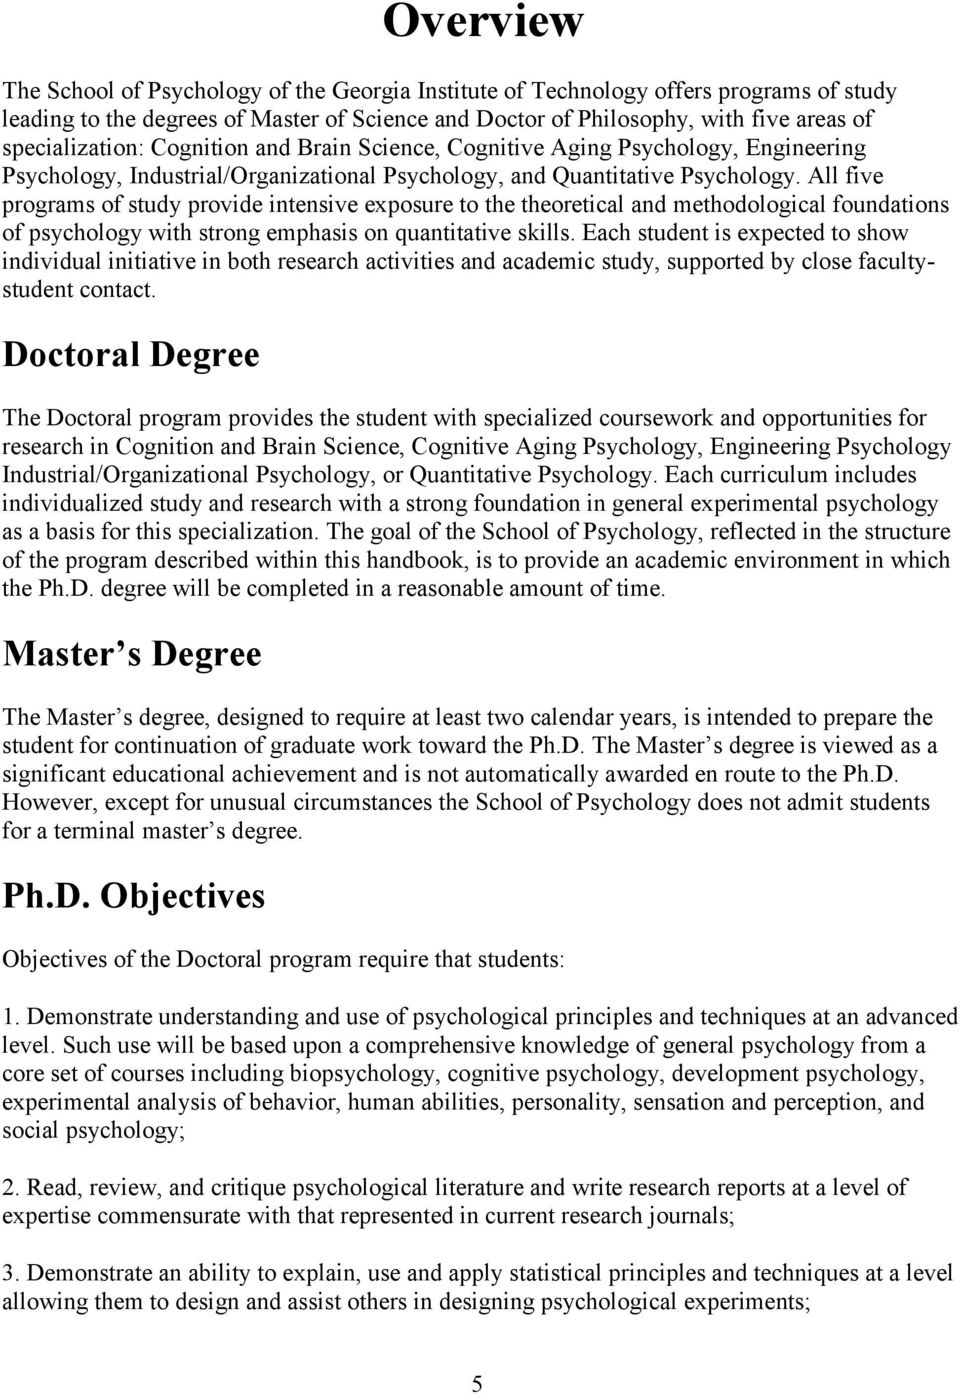 All five programs of study provide intensive exposure to the theoretical and methodological foundations of psychology with strong emphasis on quantitative skills.